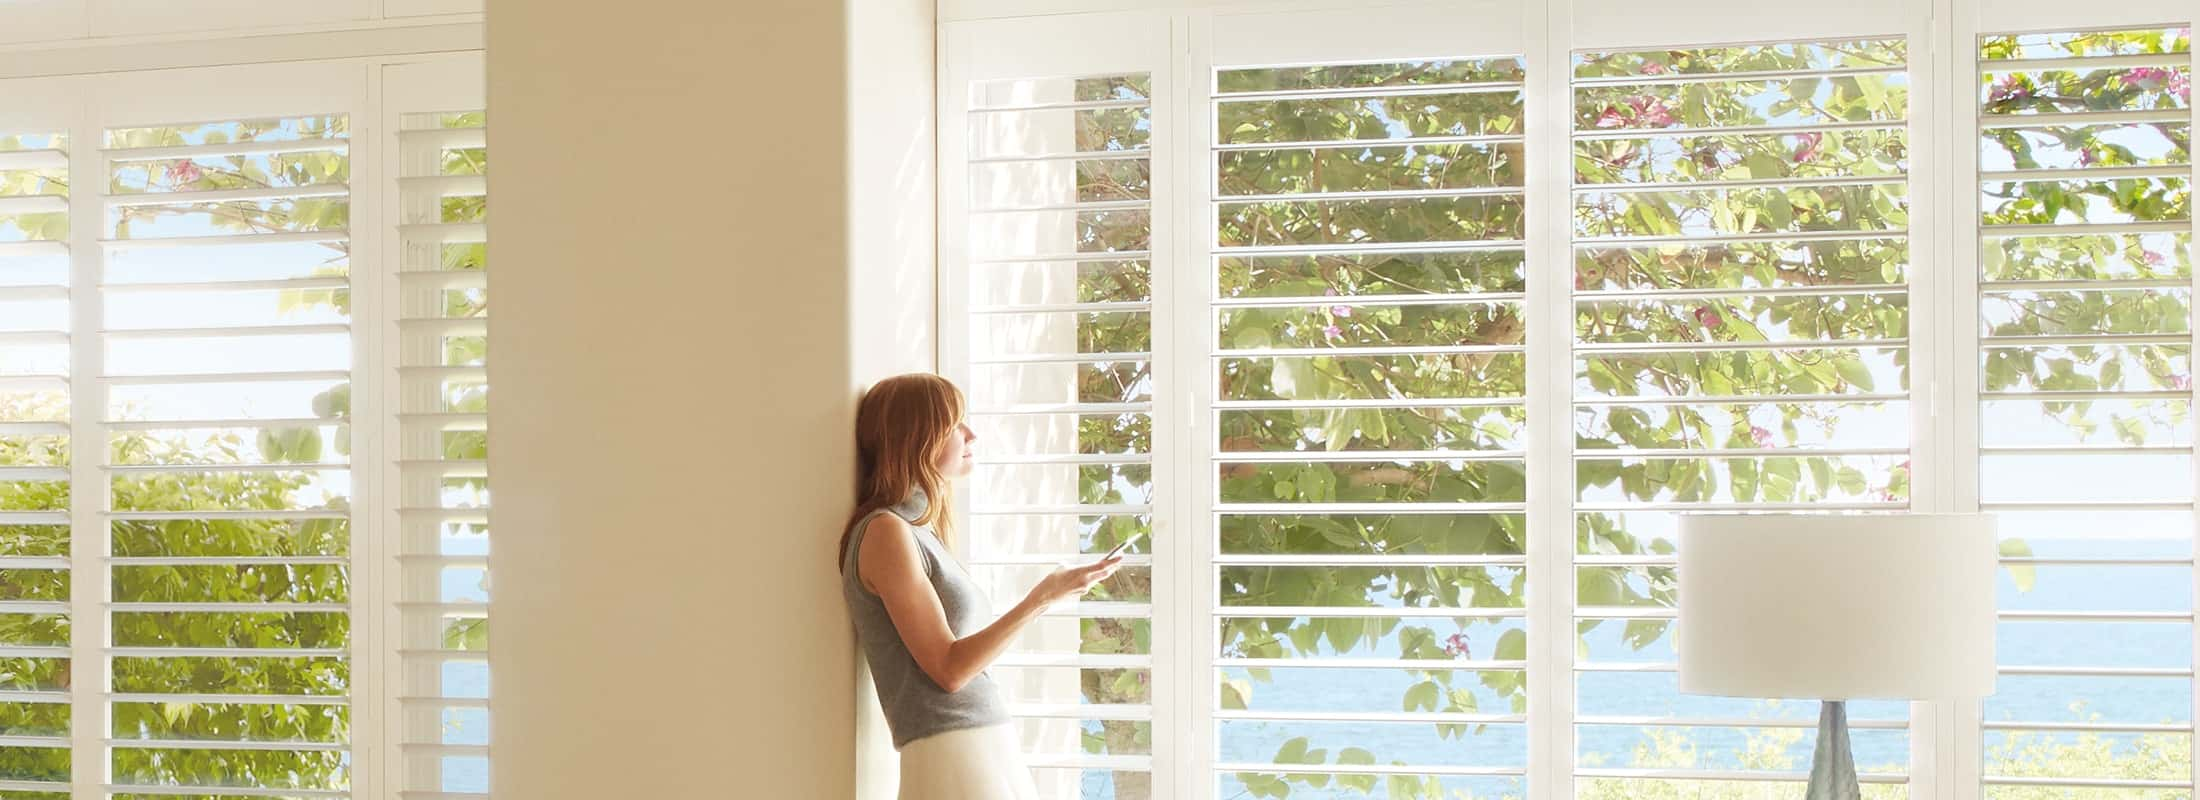 polysatin-shutters-palm-beach-in-bright-white